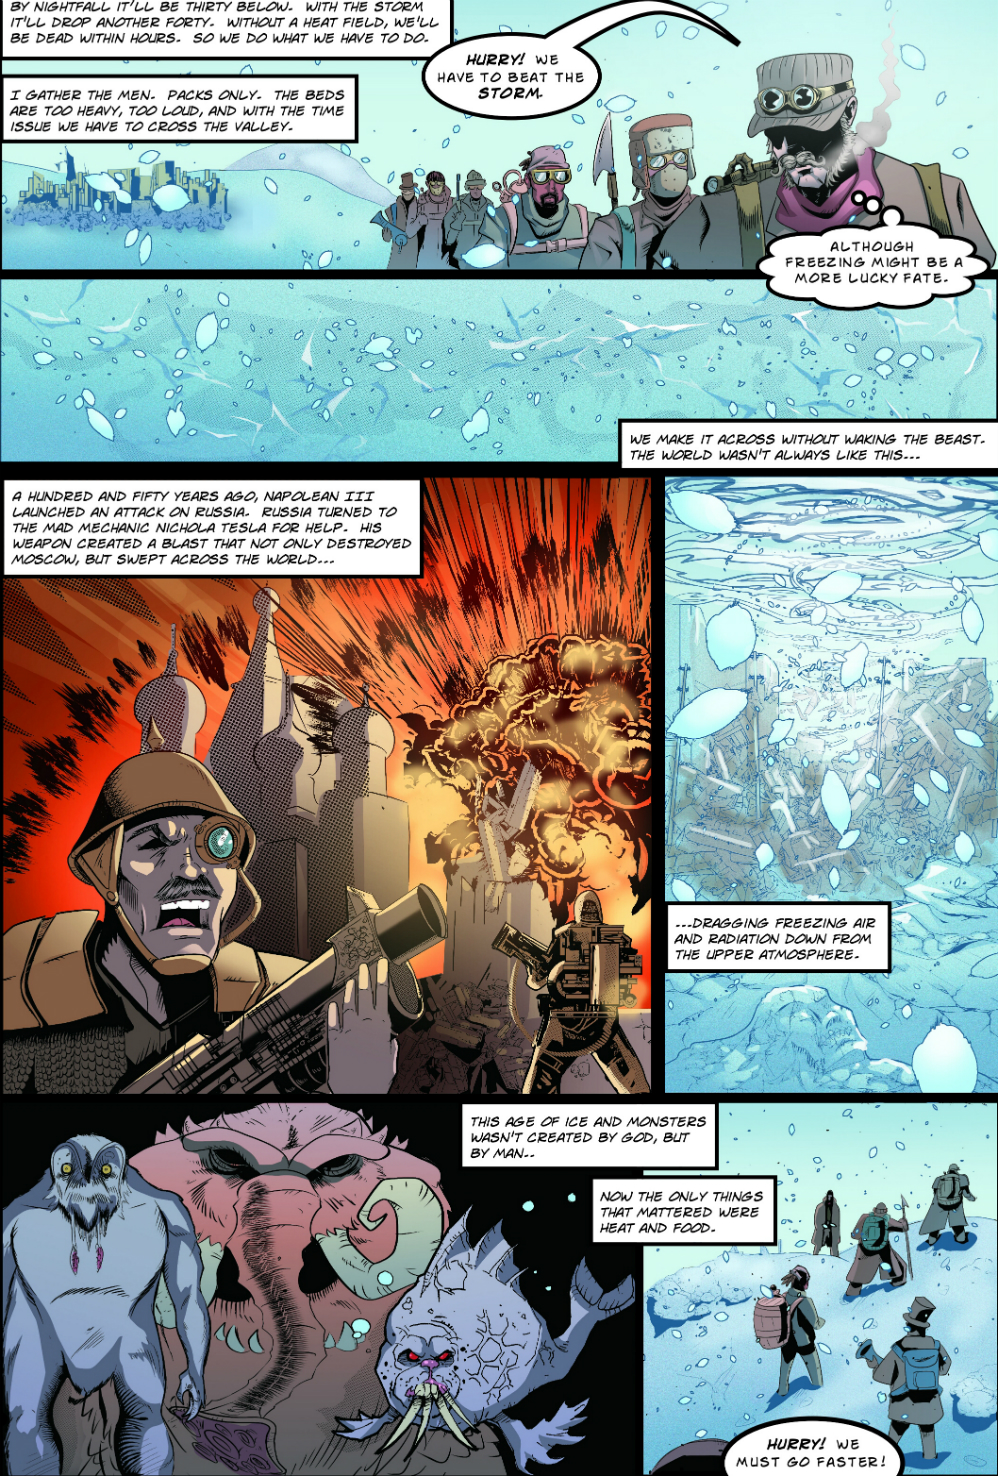 Valley of Has'Logoth page 2